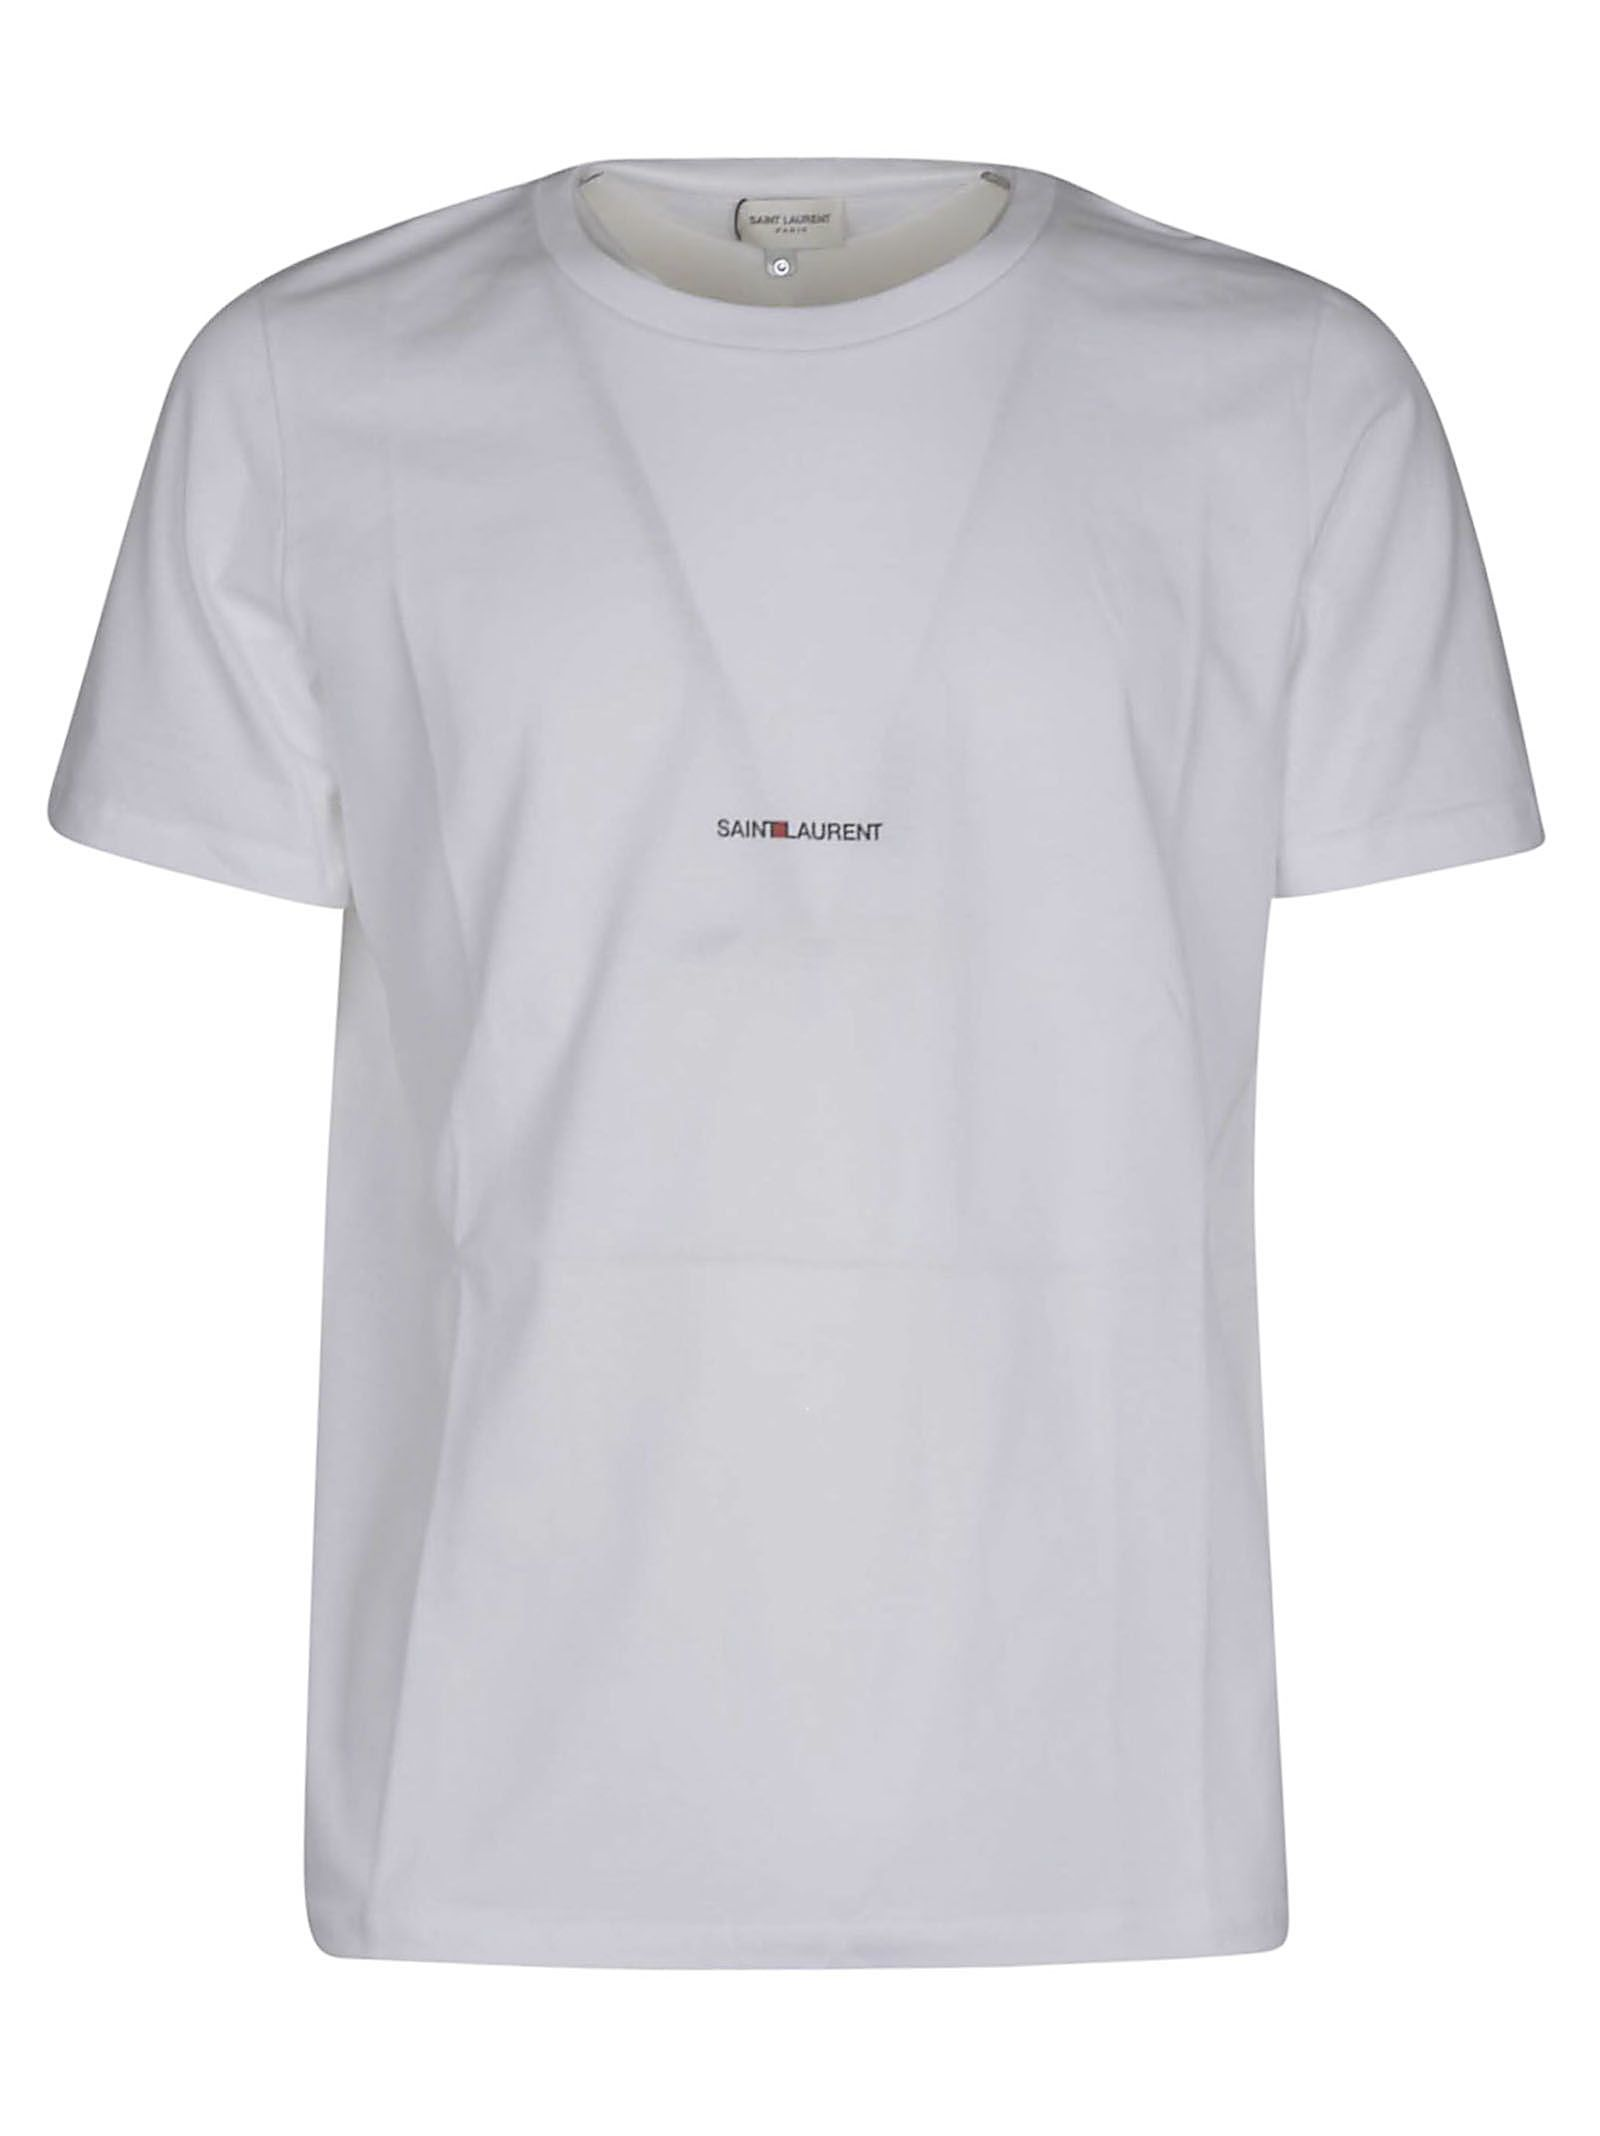 SAINT LAURENT CLASSIC T-SHIRT